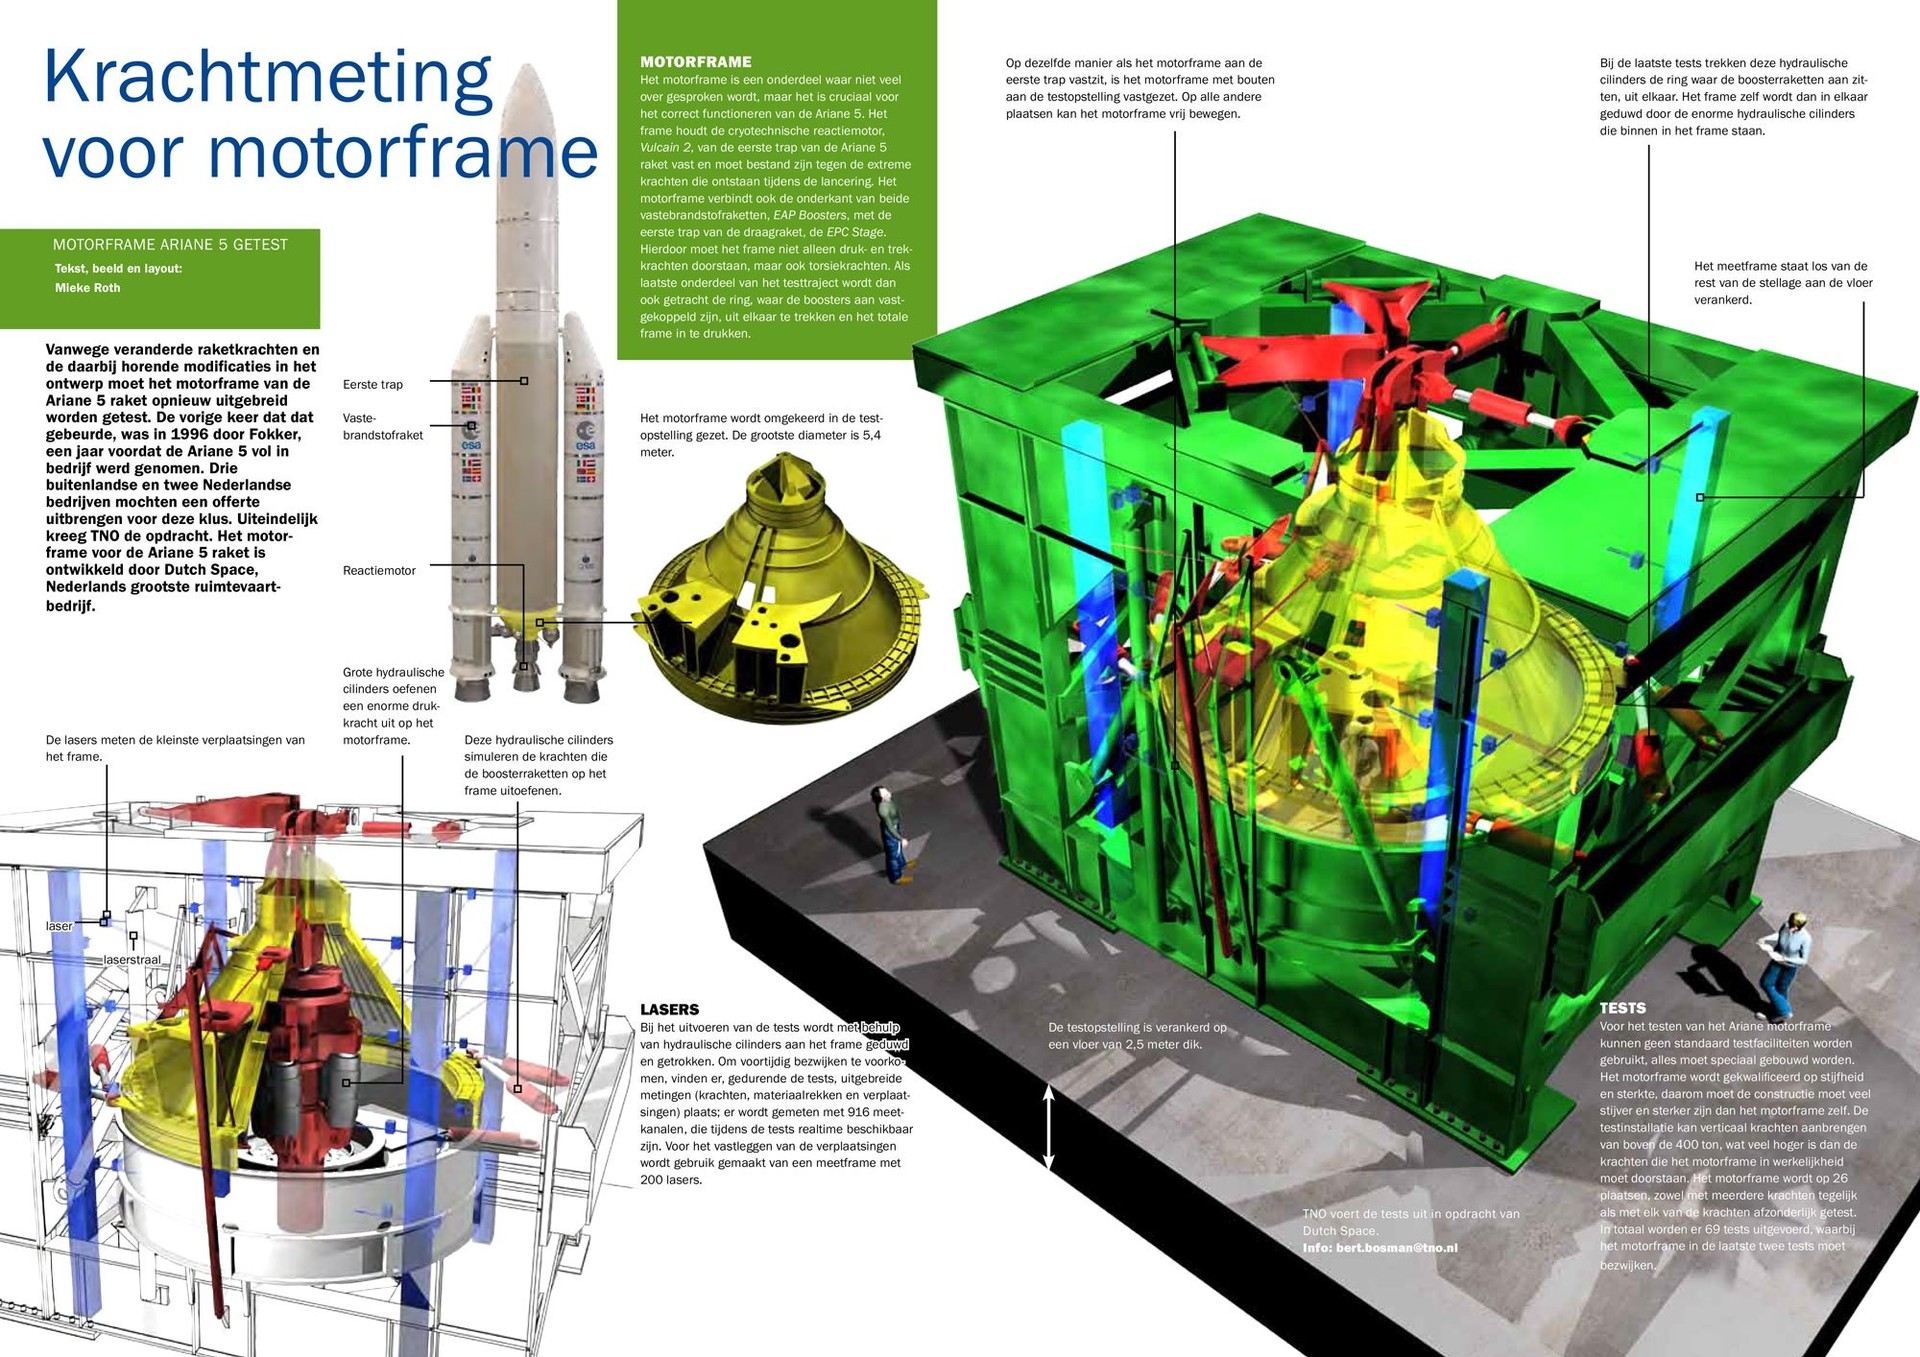 Spread about the test facility where the motor frame of the Ariane 5 rocket was tested